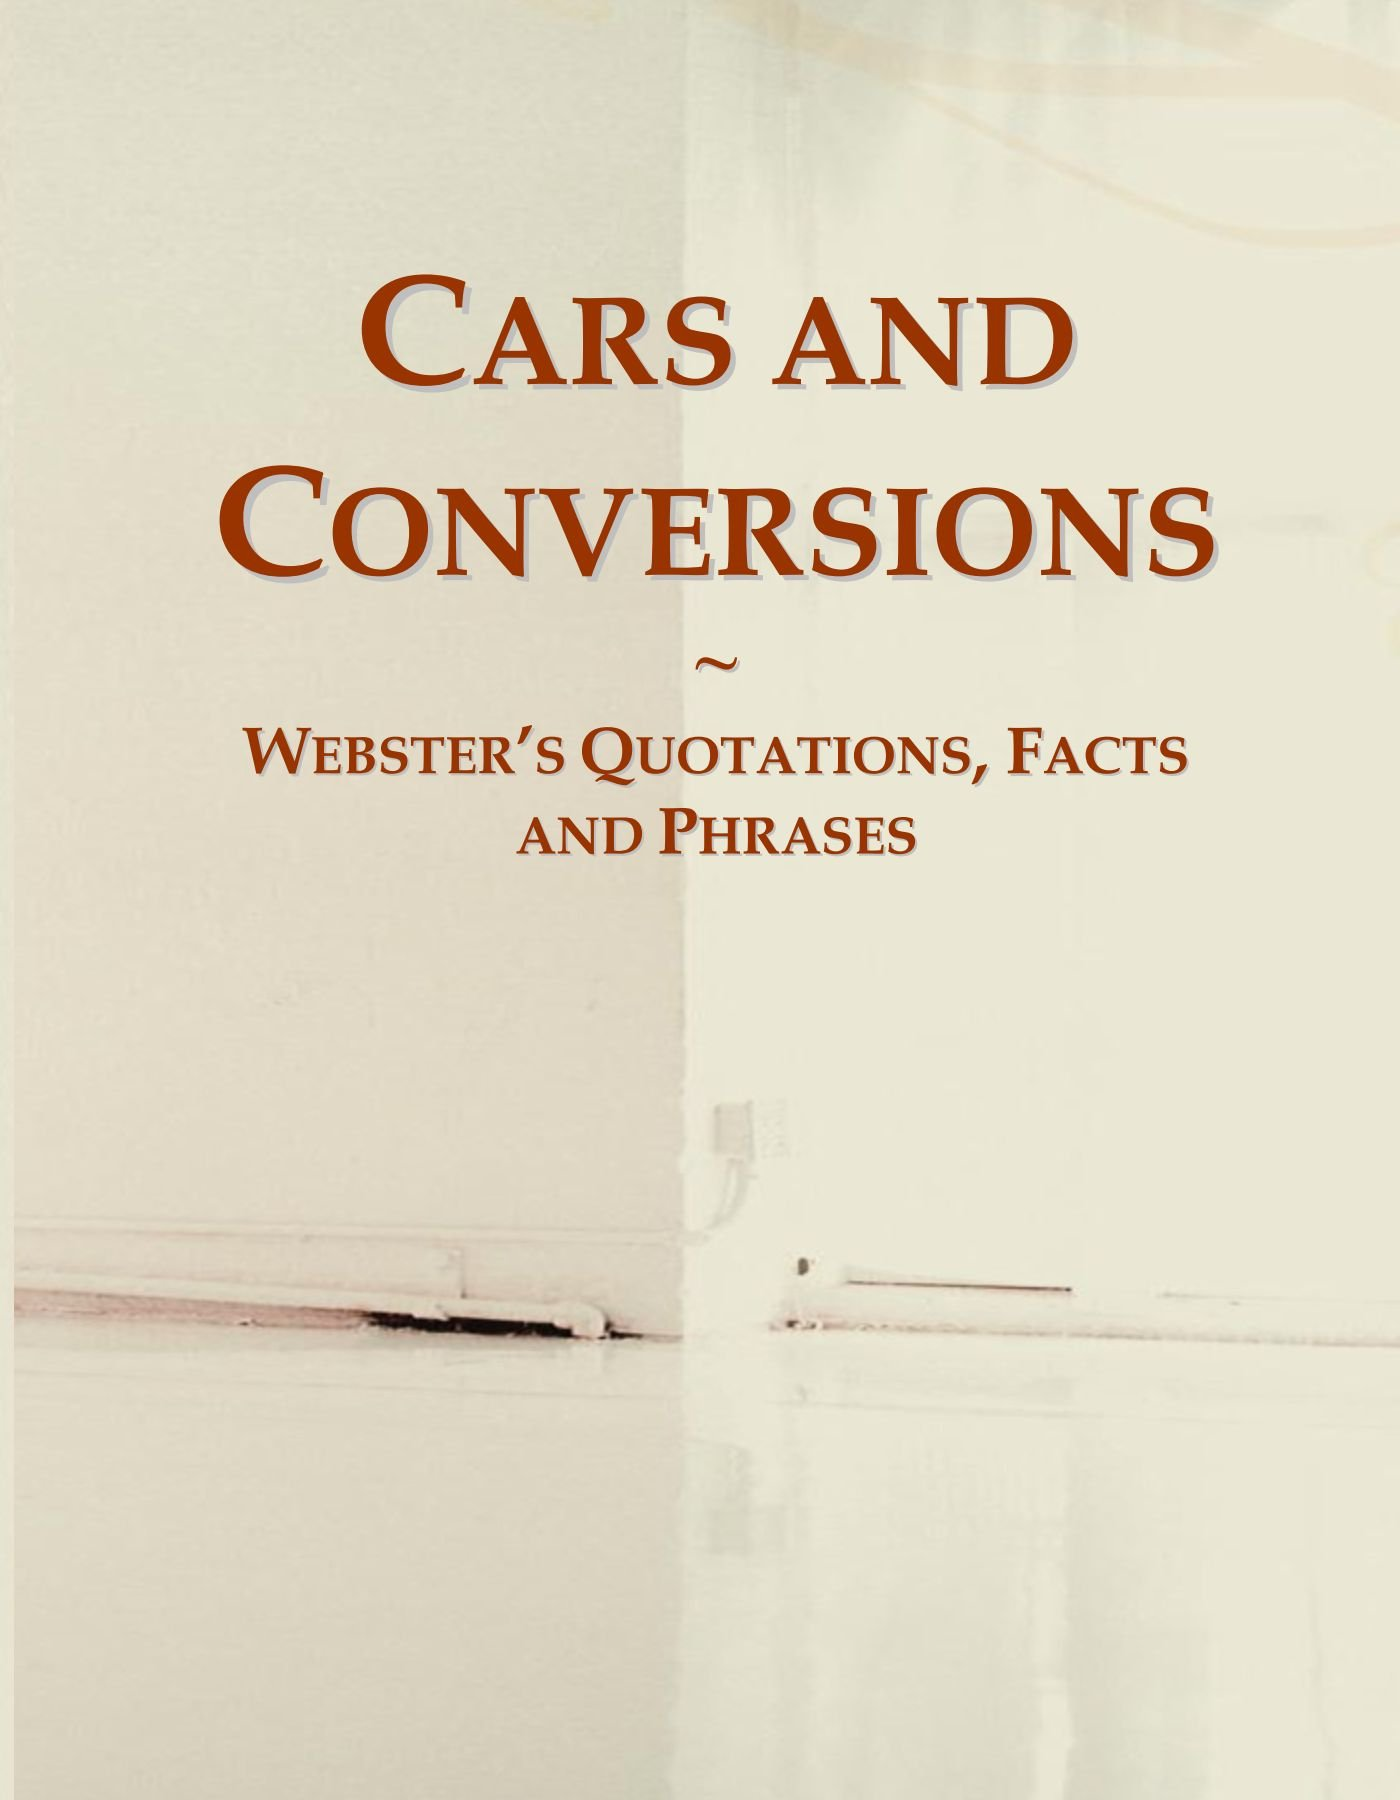 Download Cars and Conversions: Webster's Quotations, Facts and Phrases PDF